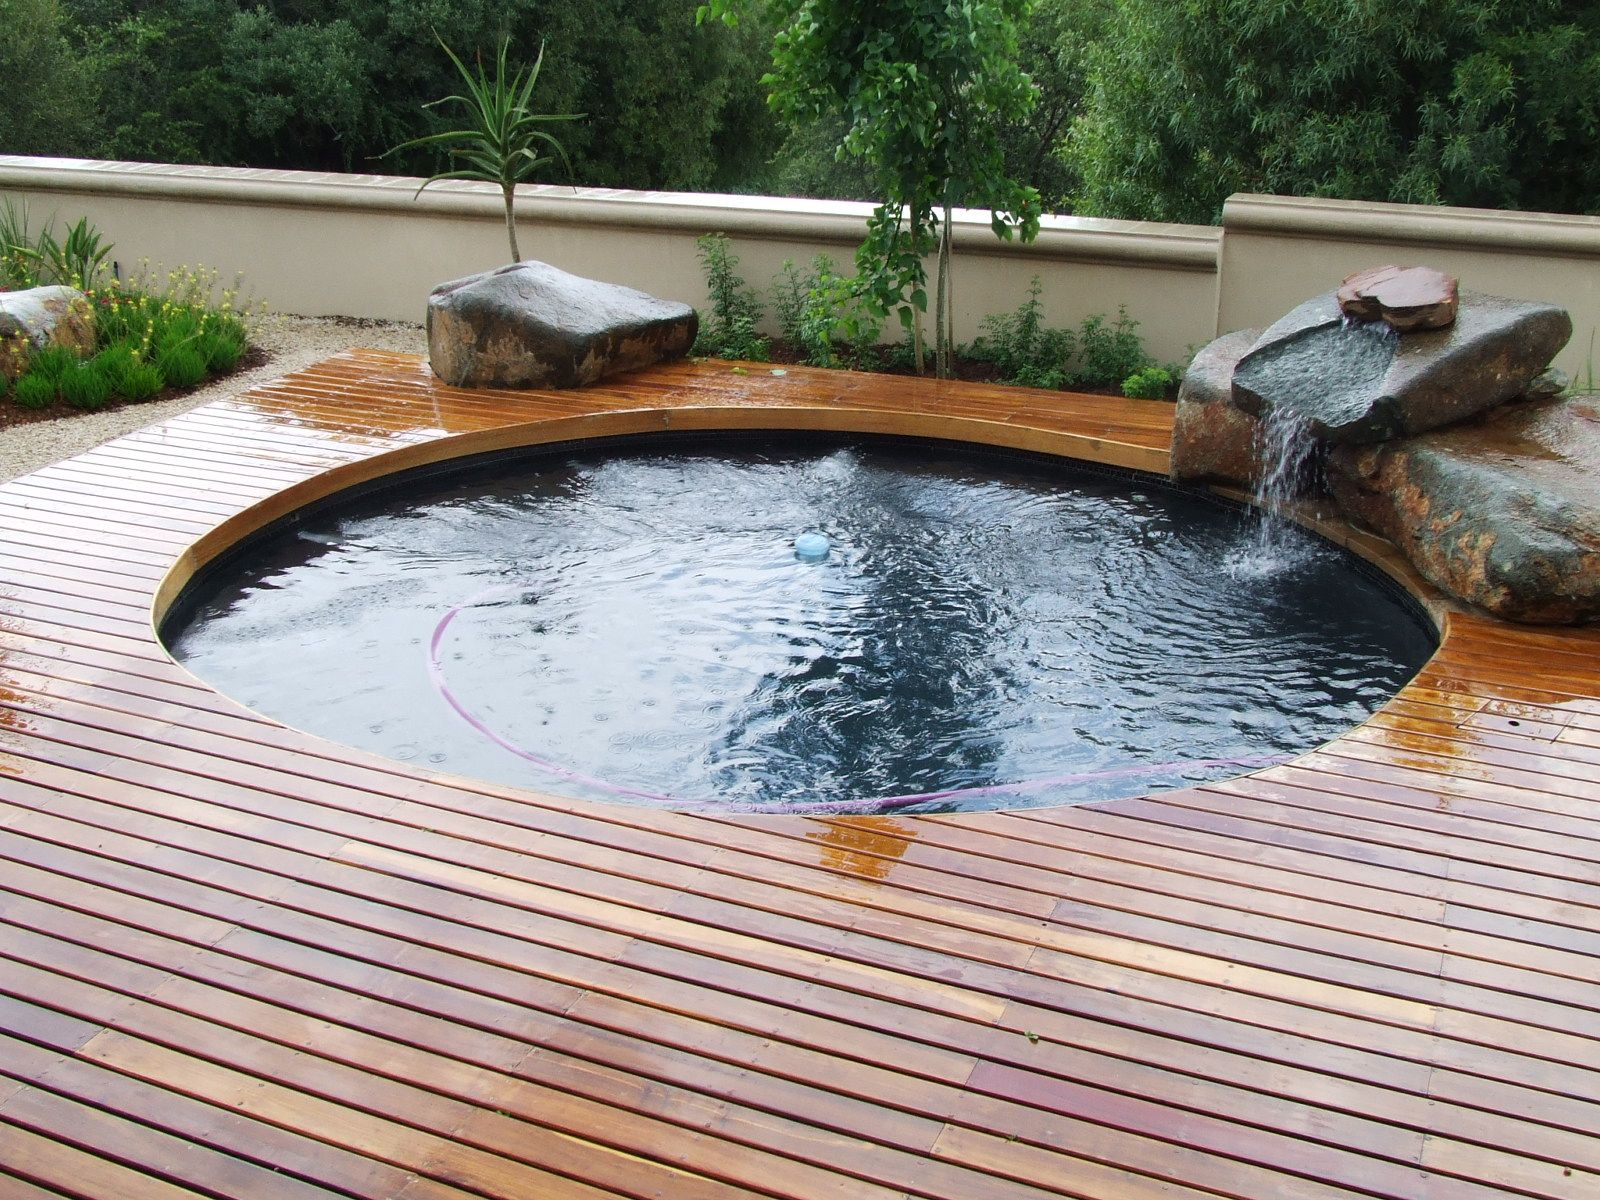 Cool Design Ideas With Varnished Wooden Deck Round Shape Green Plant